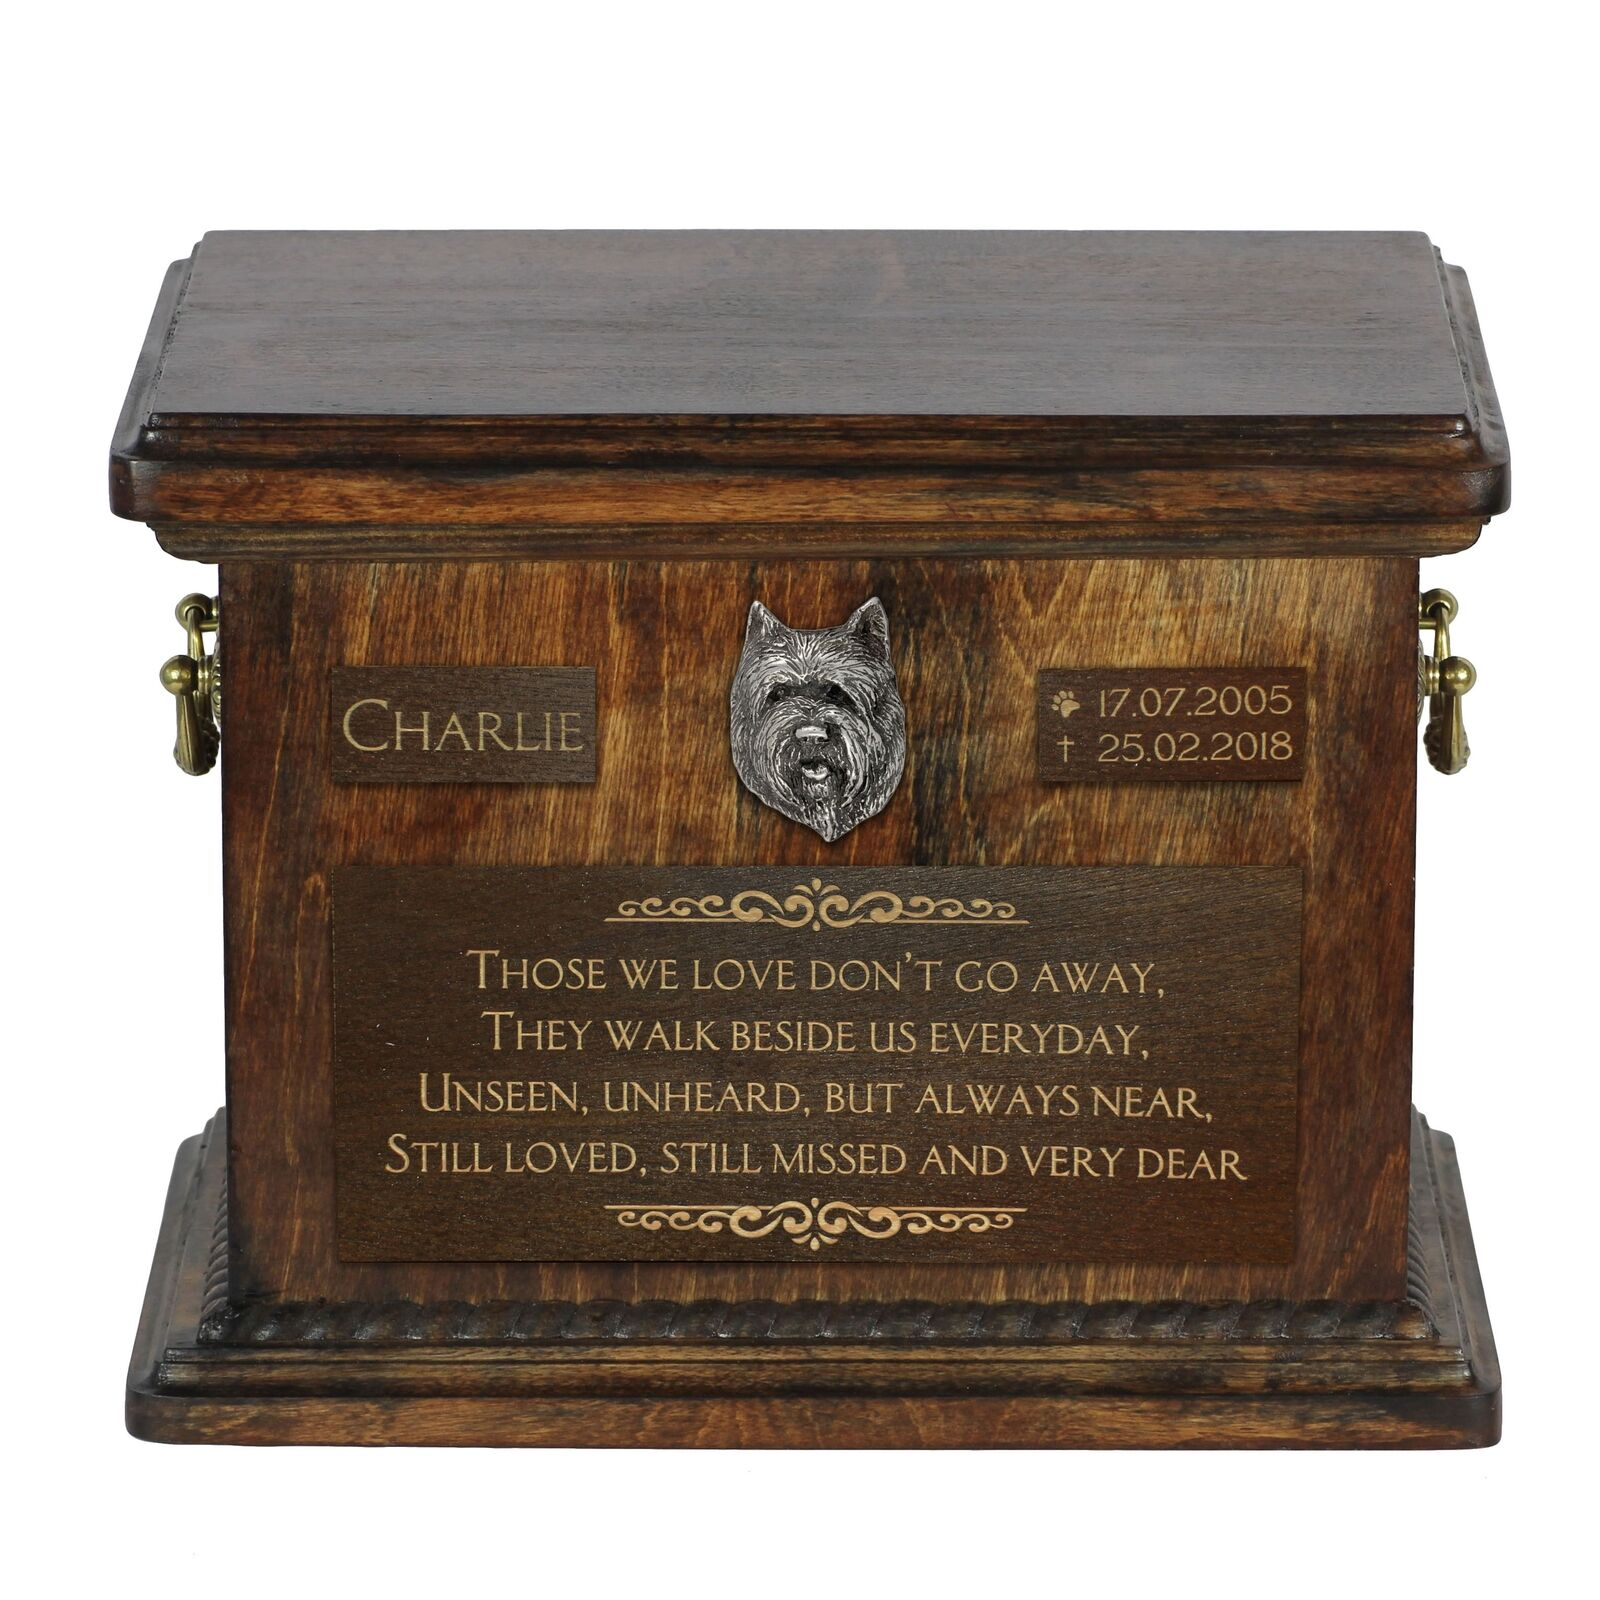 Cairn Terrier 2  Urn Urn Urn for dog's ashes with image of a dog, Art Dog 92c16b